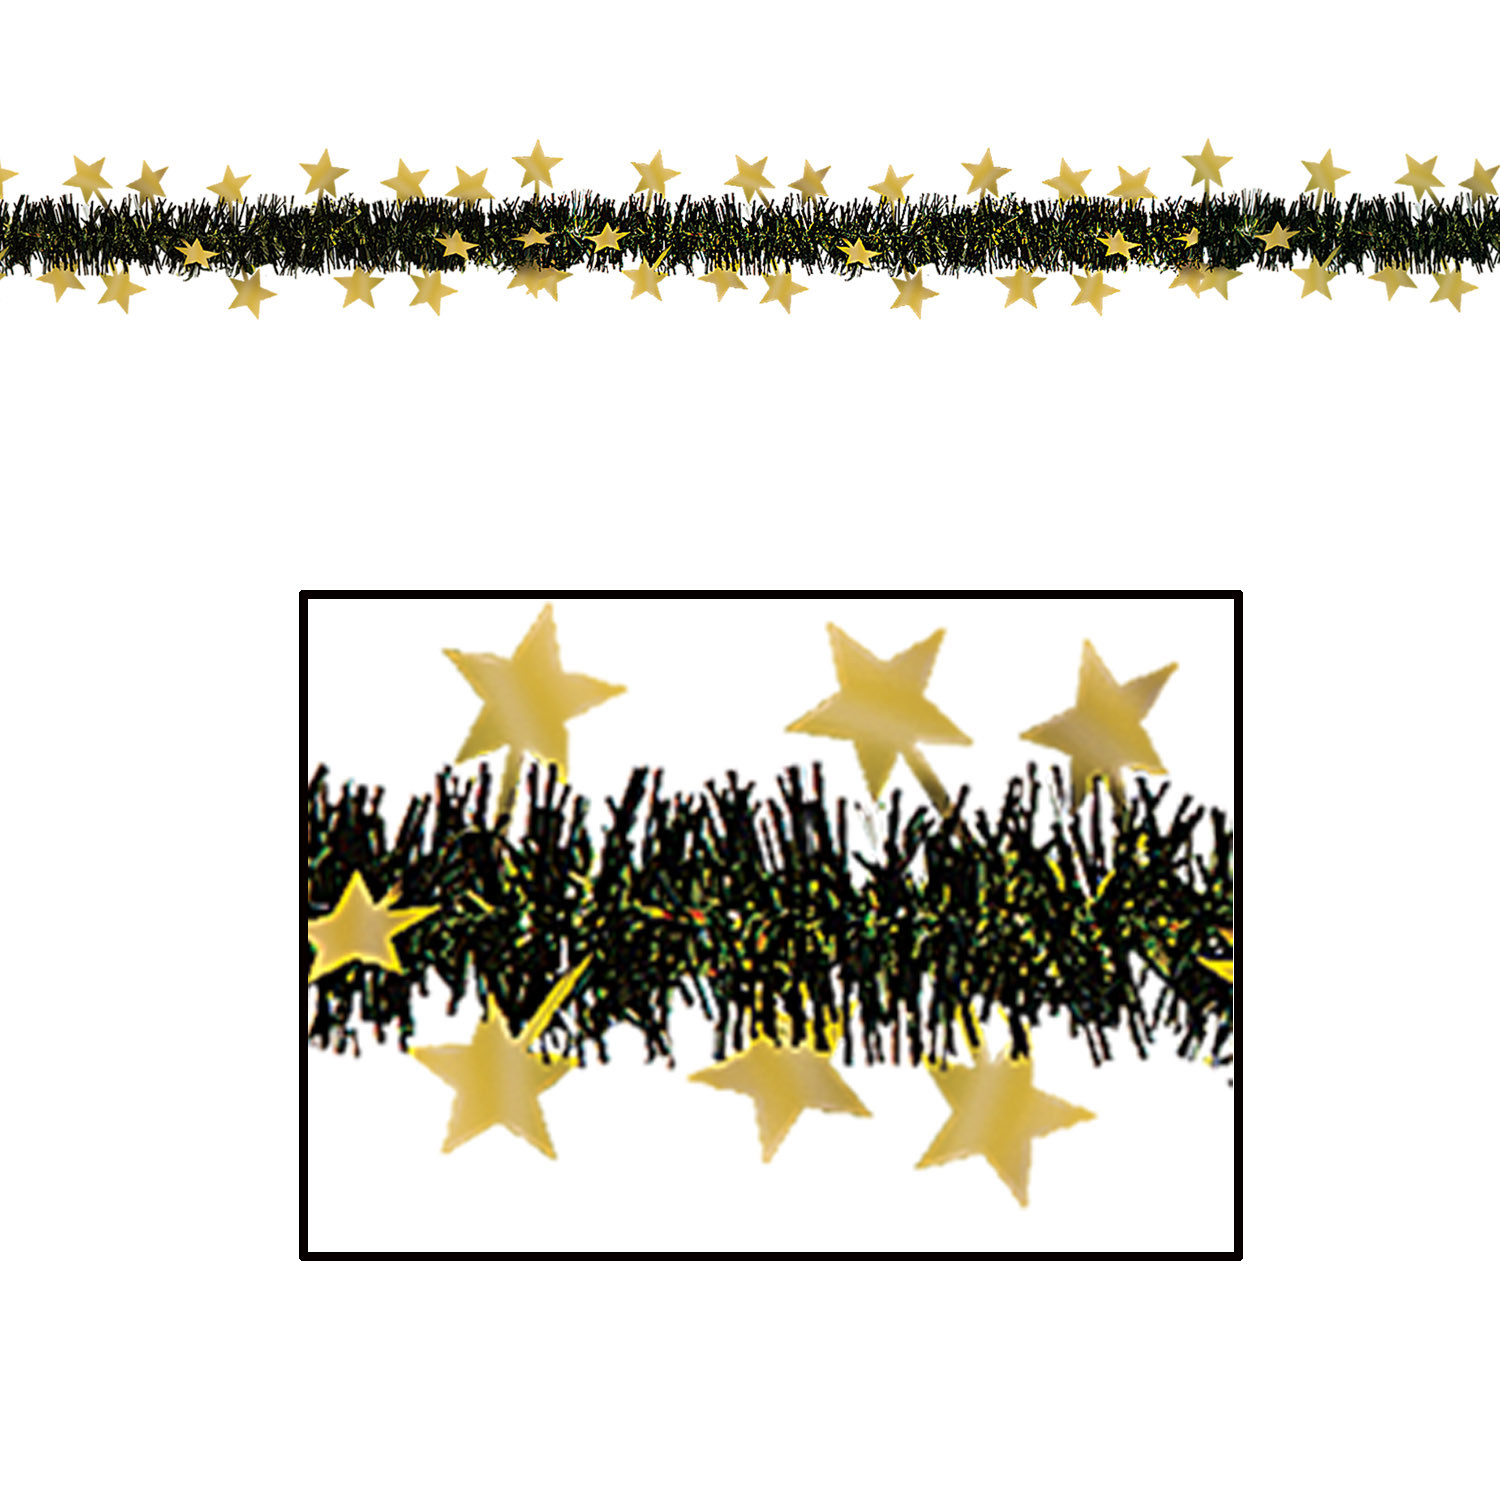 Black metallic fringe garland with gold stars.